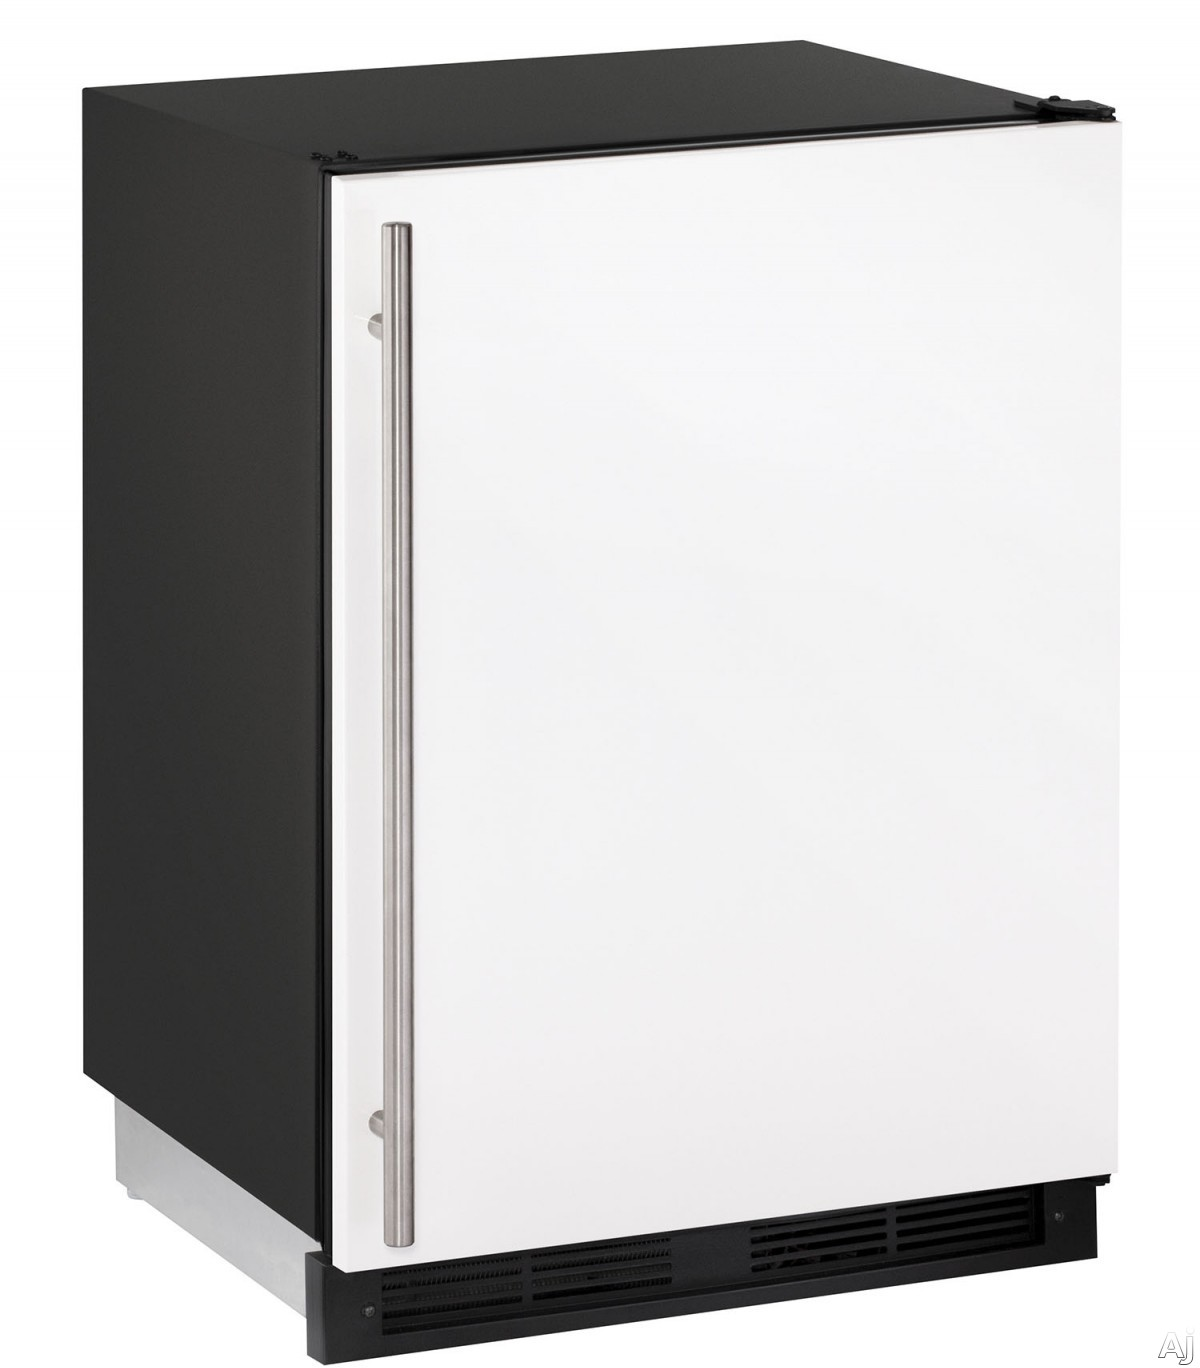 White Built In Refrigerators